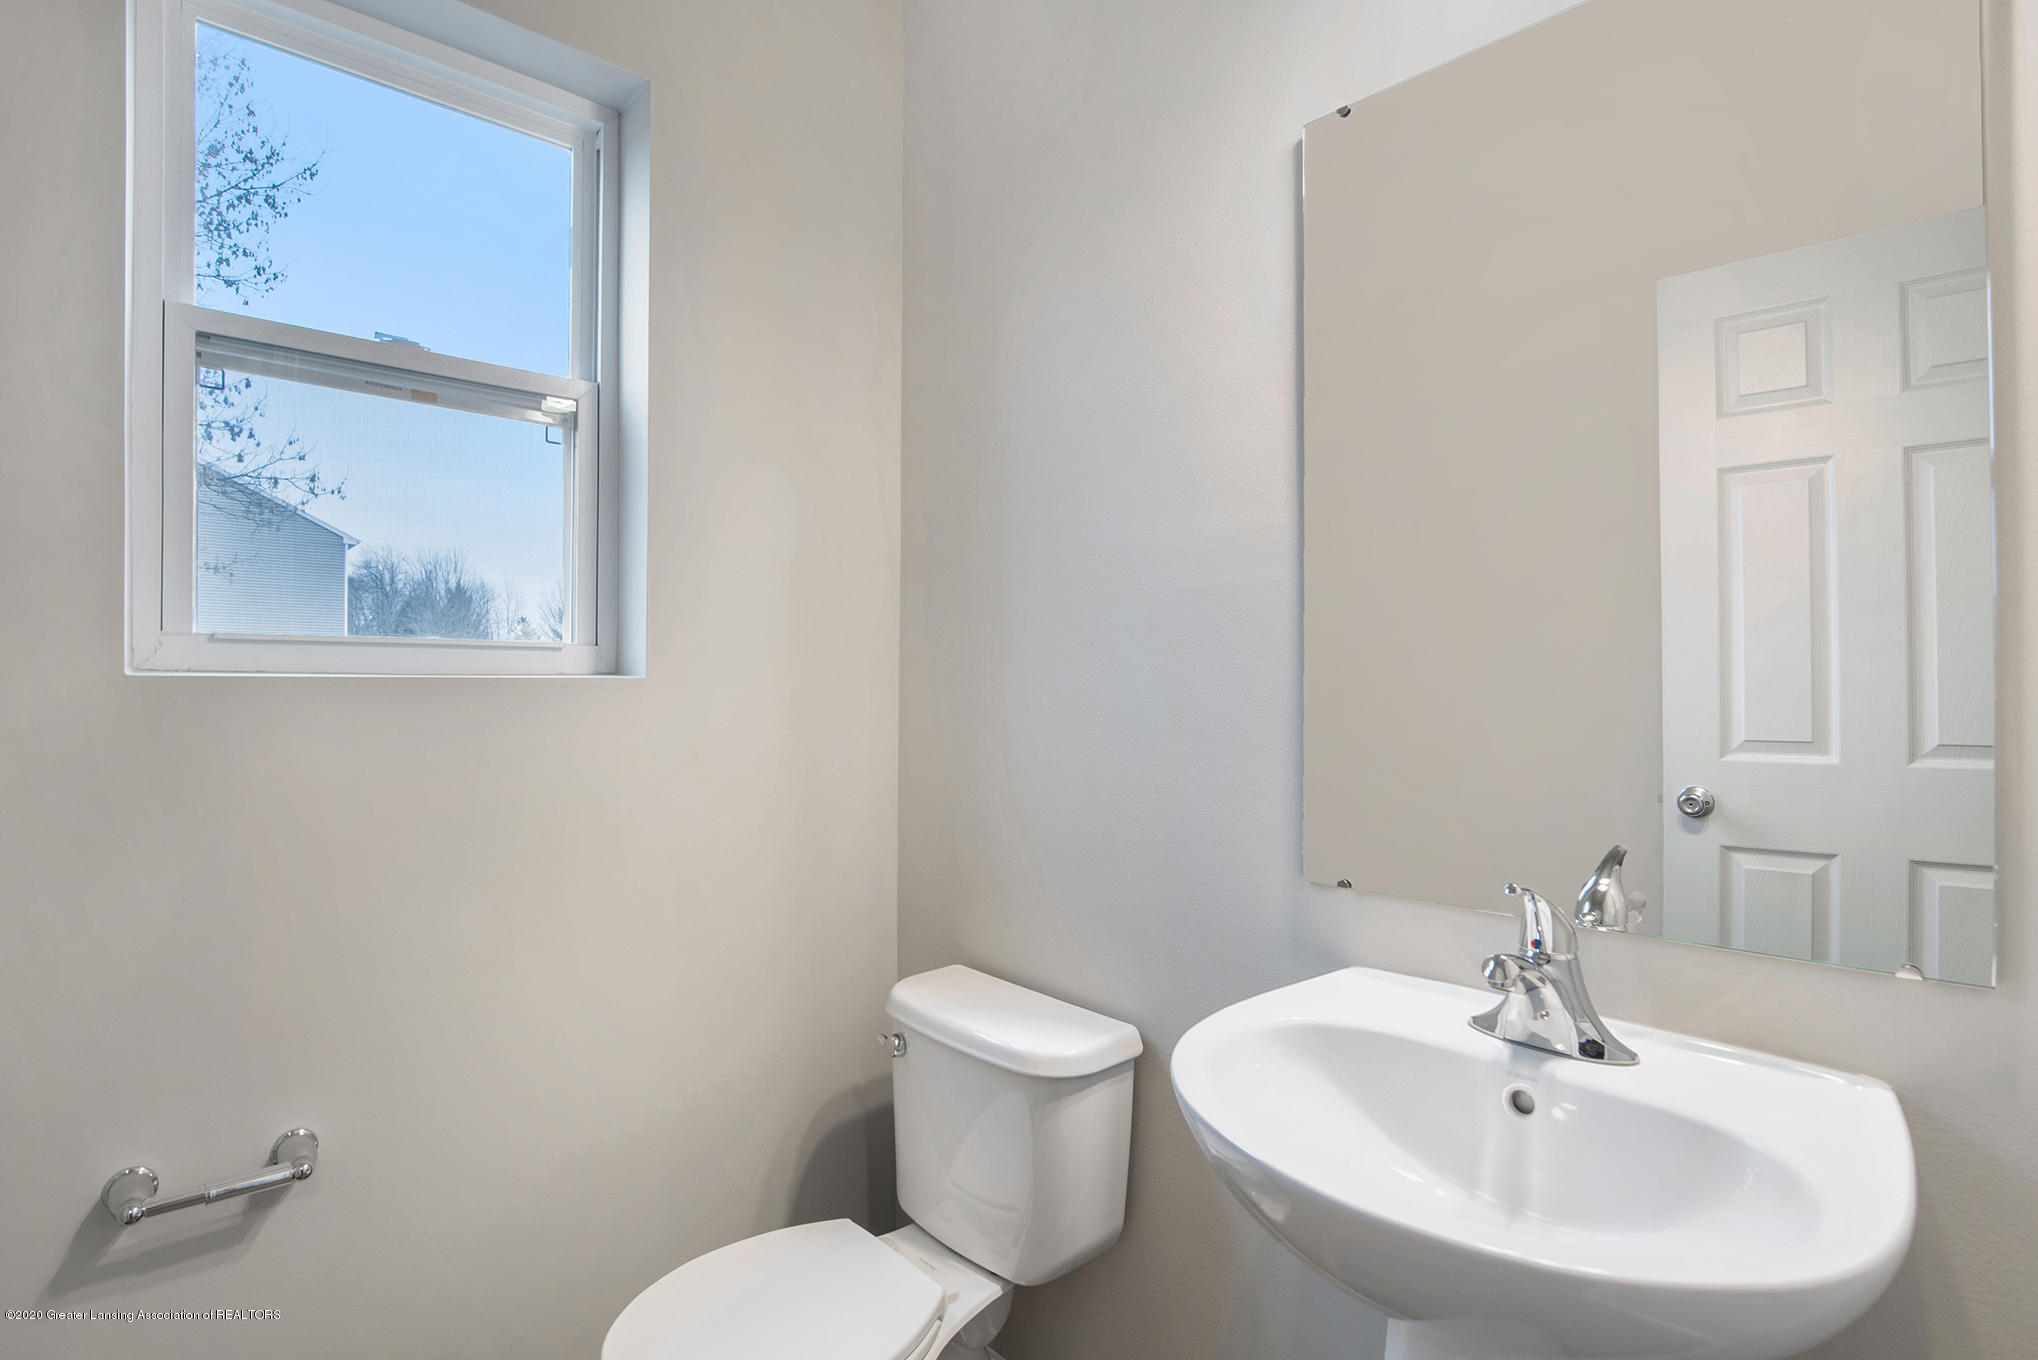 5351 Somerset Dr - GMR081-E2390-Powder Room - 3